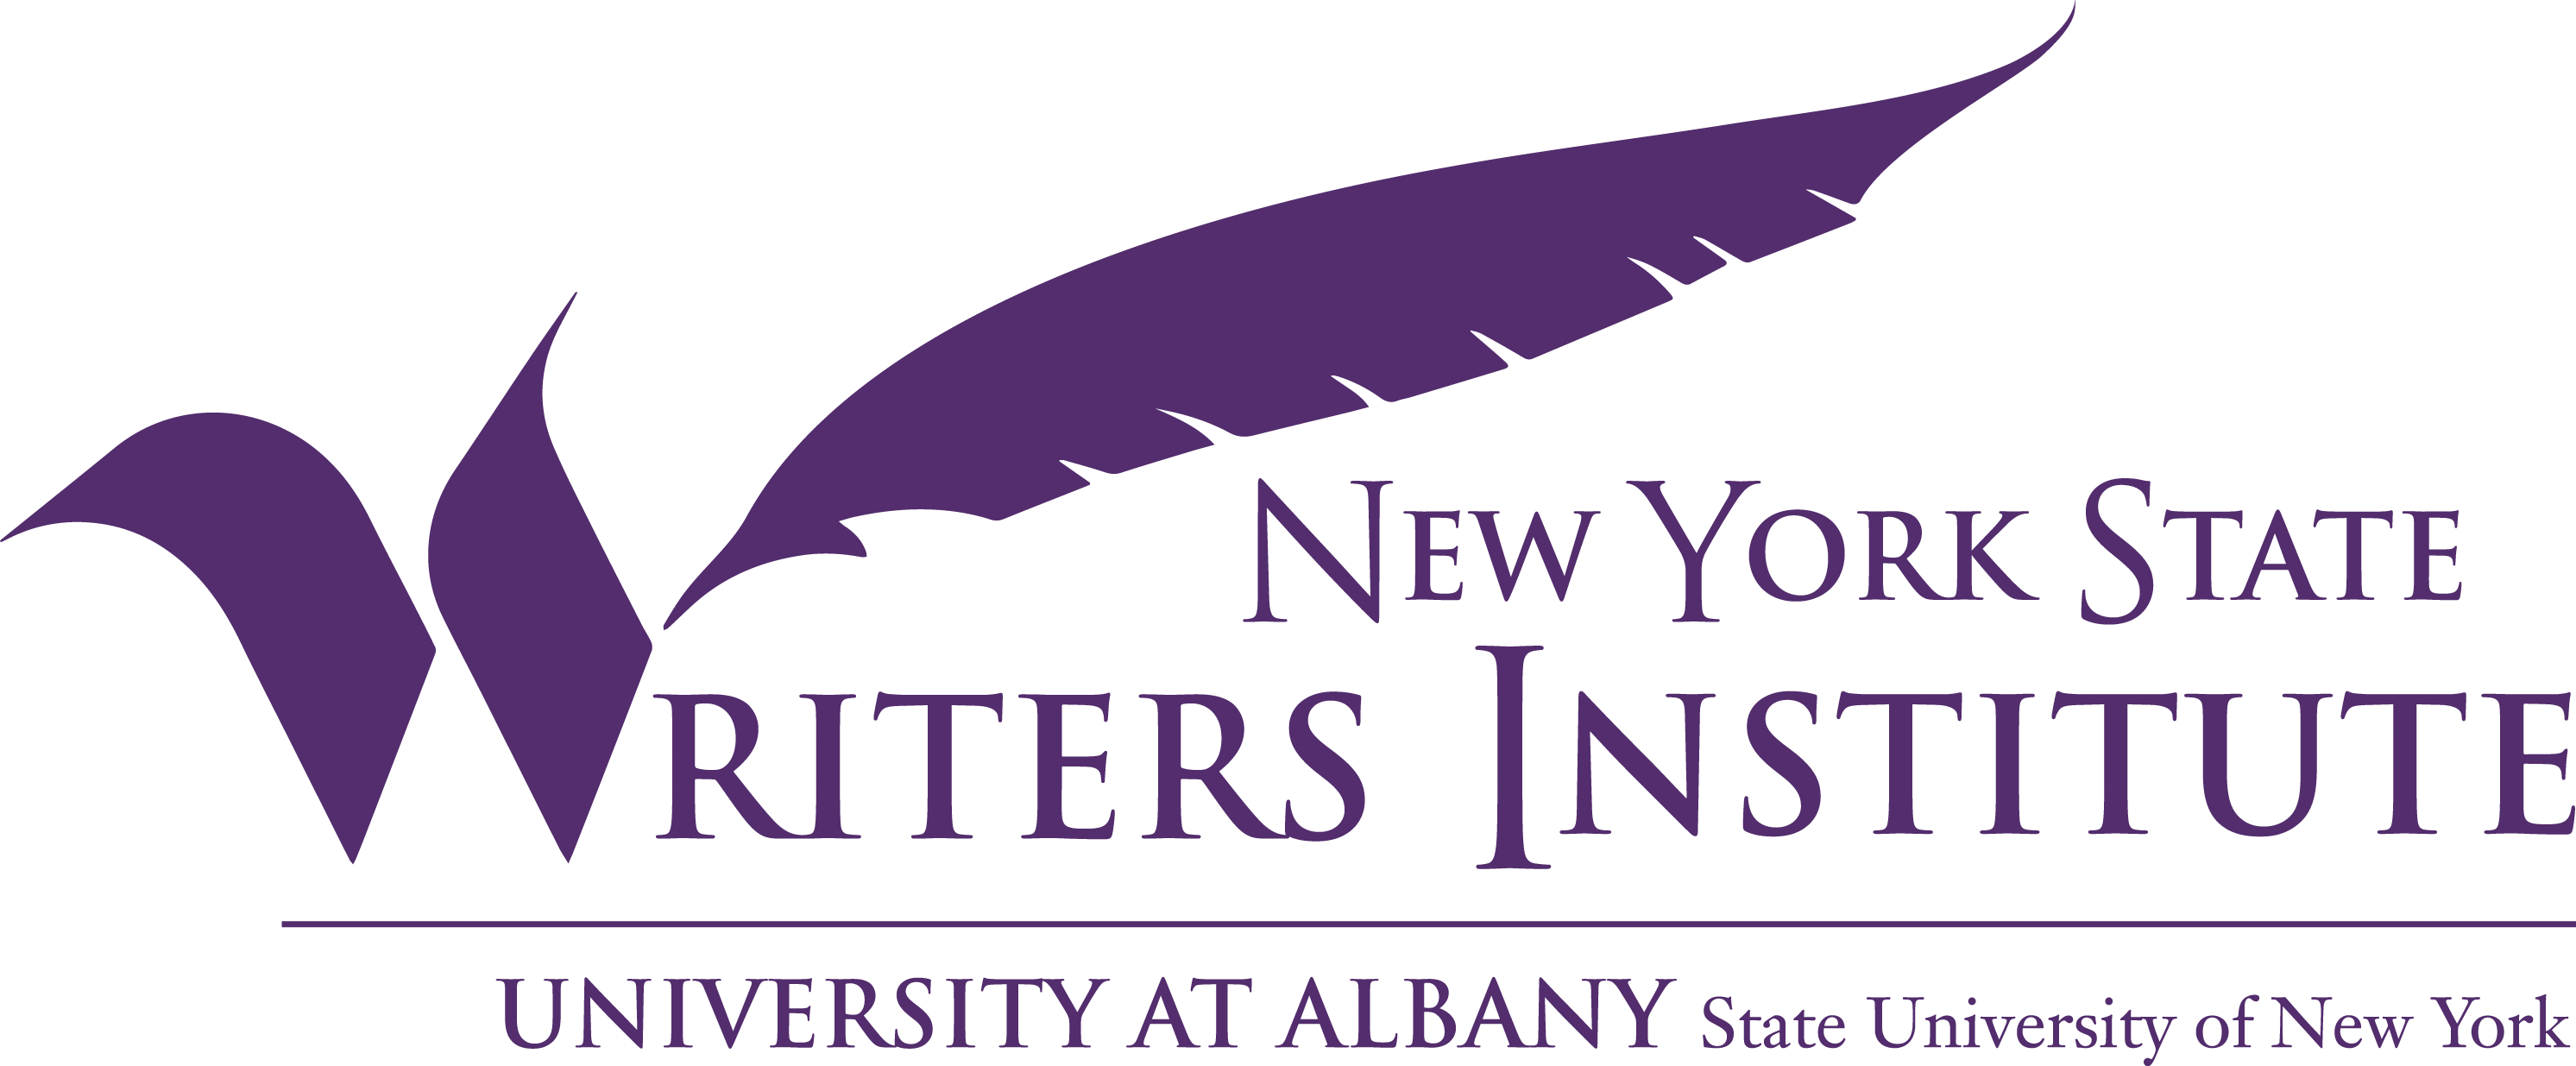 New York State Writers Institute logo